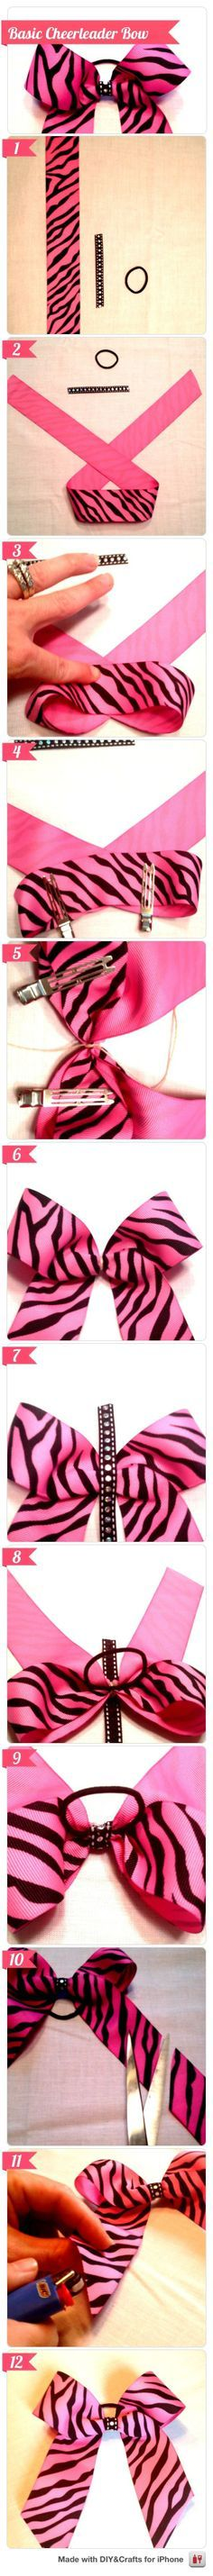 This shows how to do a cheer bow... But may work for crafts too w/o the hair tie